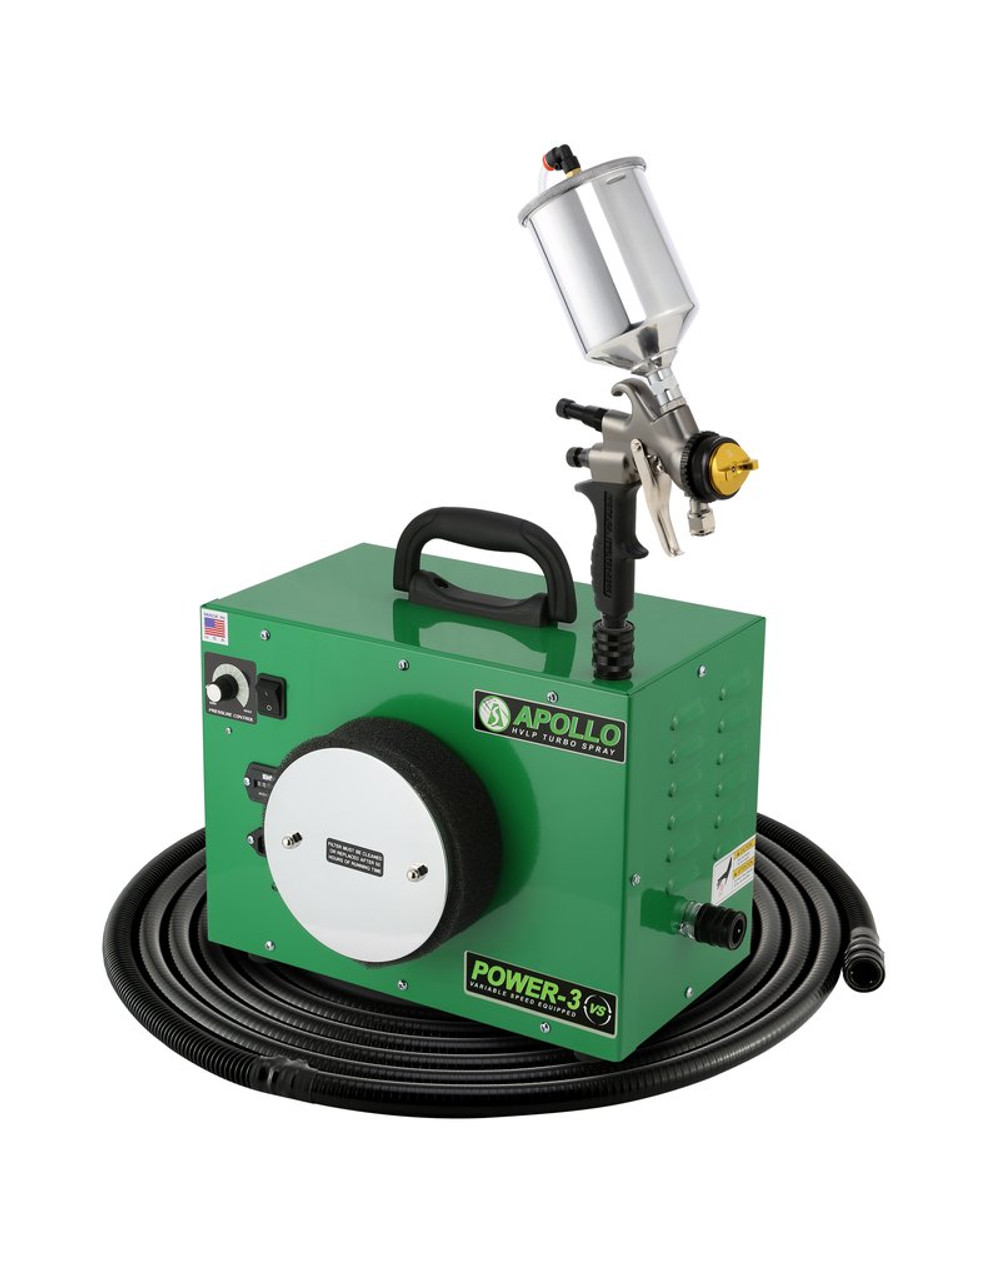 Apollo - 3-stage, POWER 3 VS; 110 volt motor with 29' air flex hose and A7700GT-1000 spray gun and an A7536A 1,000cc Gravity Feed cup. (PW3VS1107700GT)